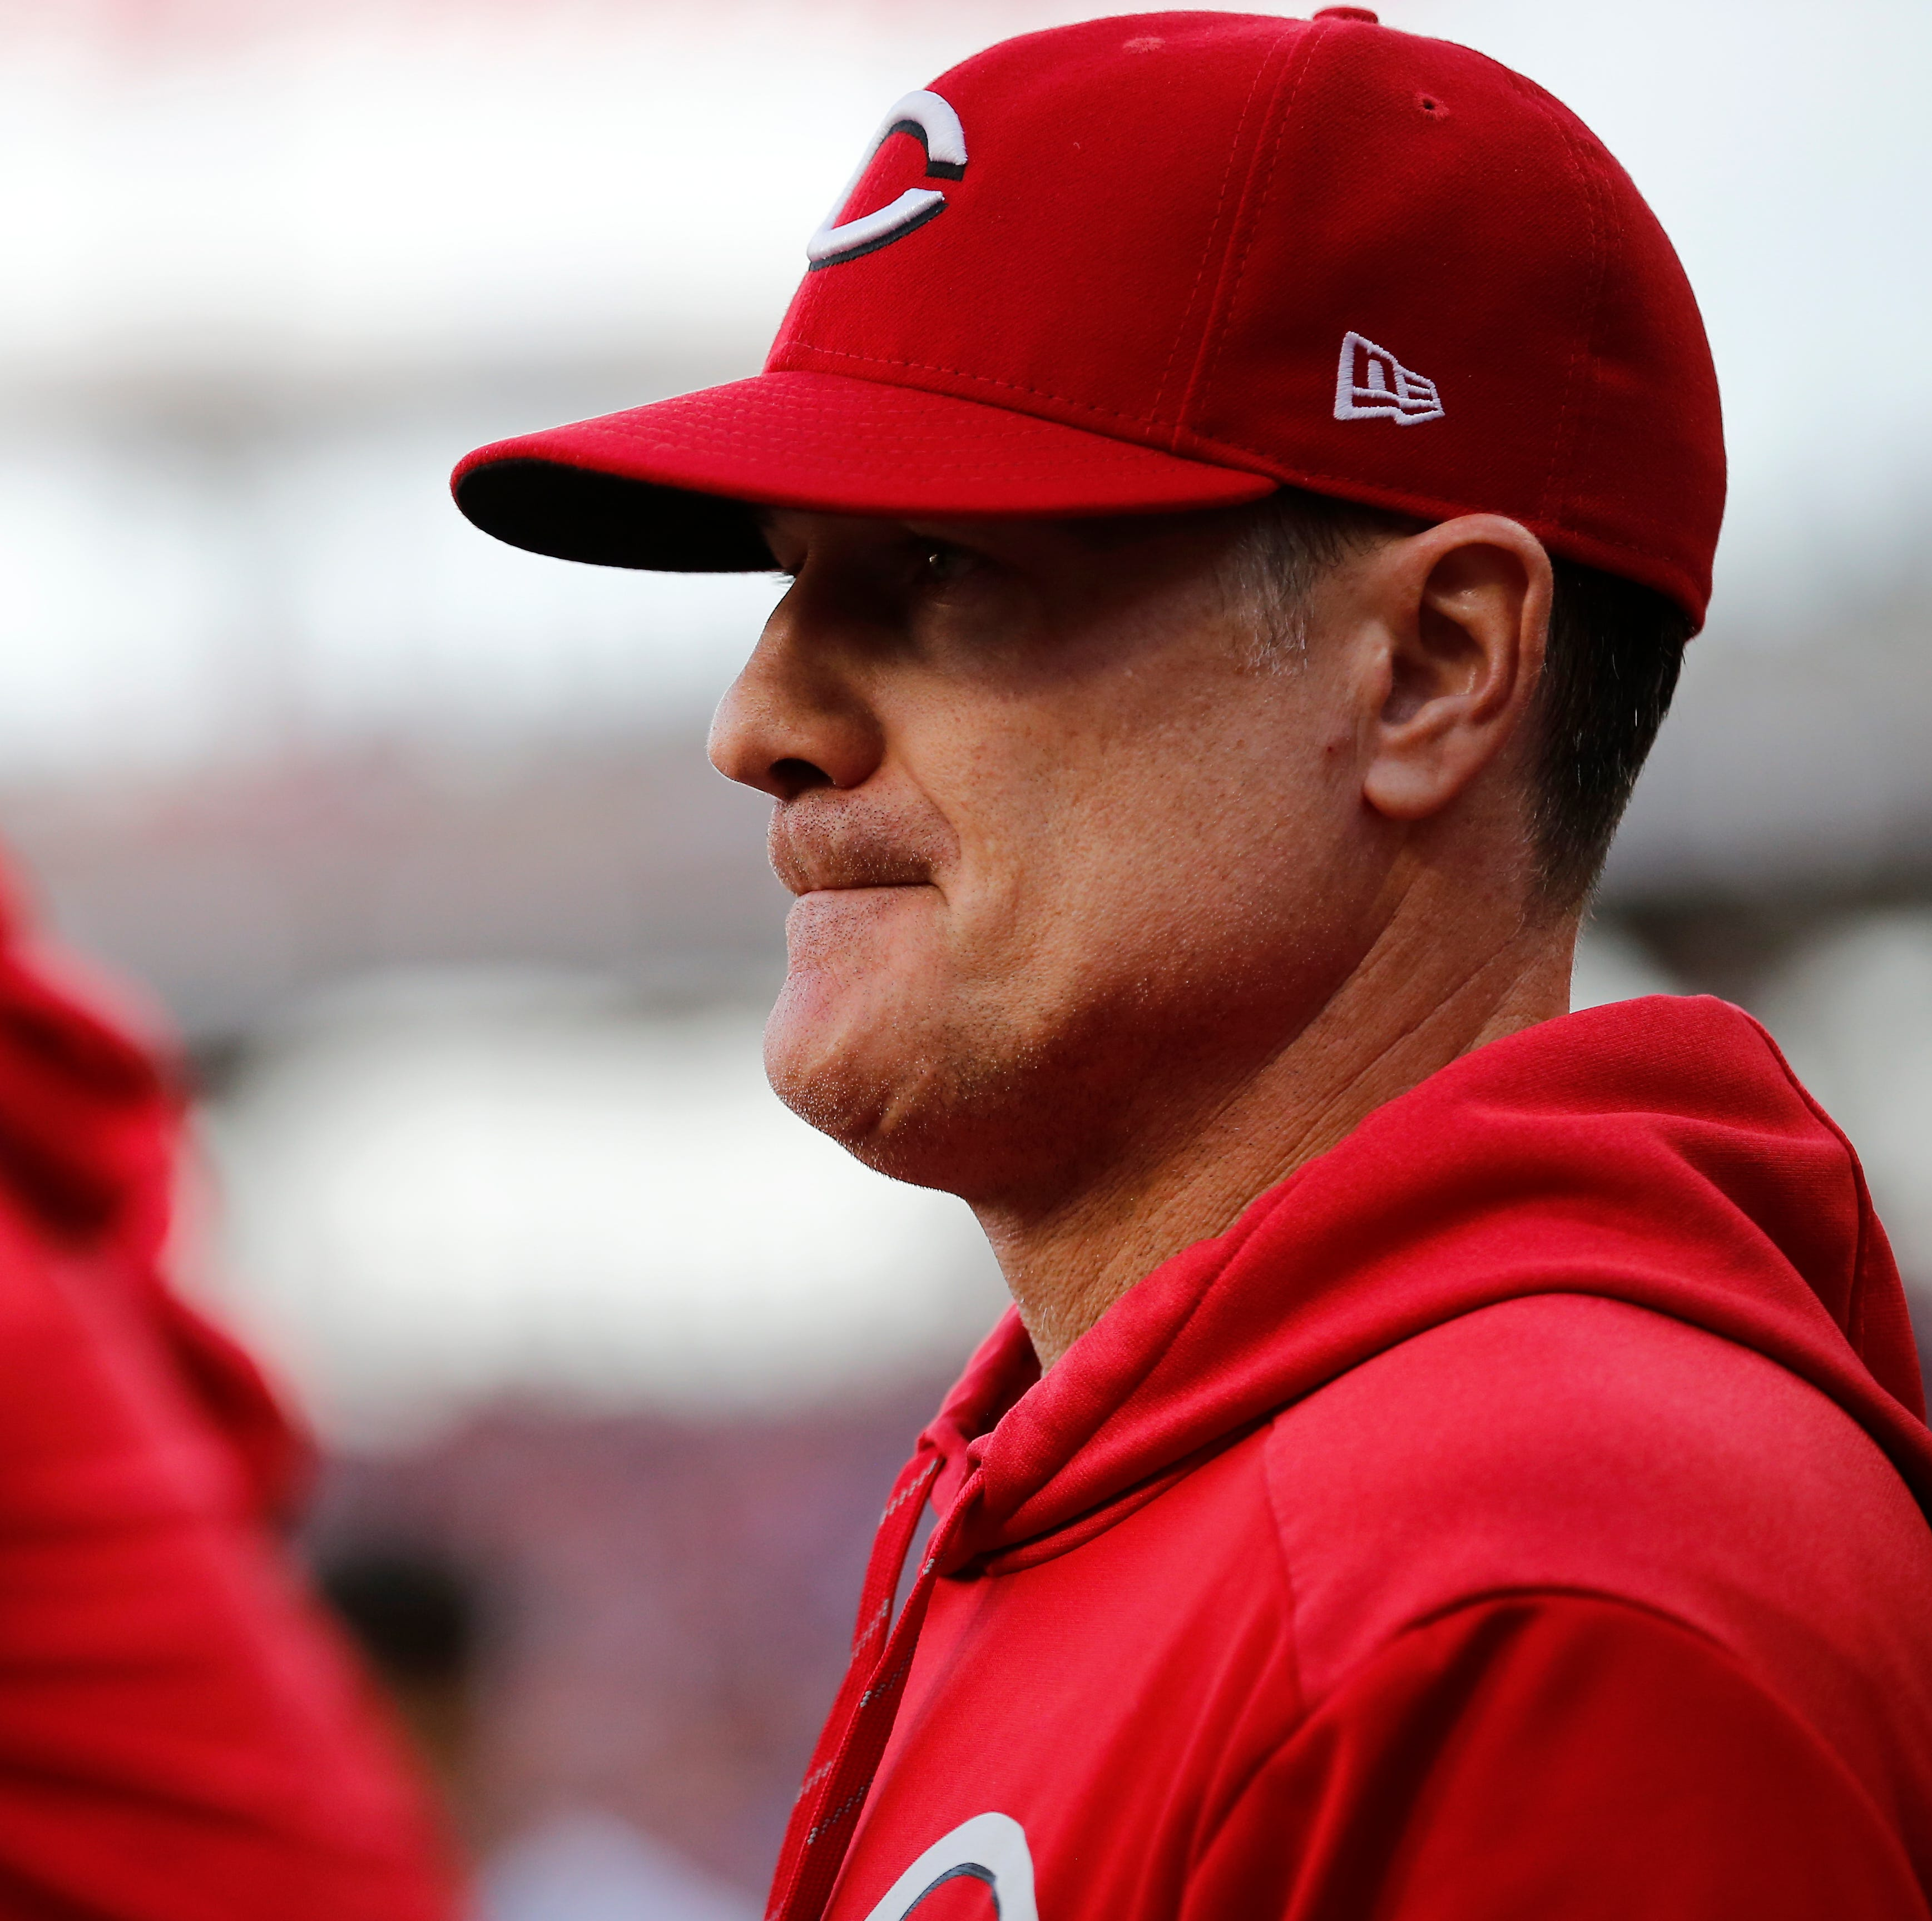 Are you encouraged or discouraged by the Cincinnati Reds' season so far?